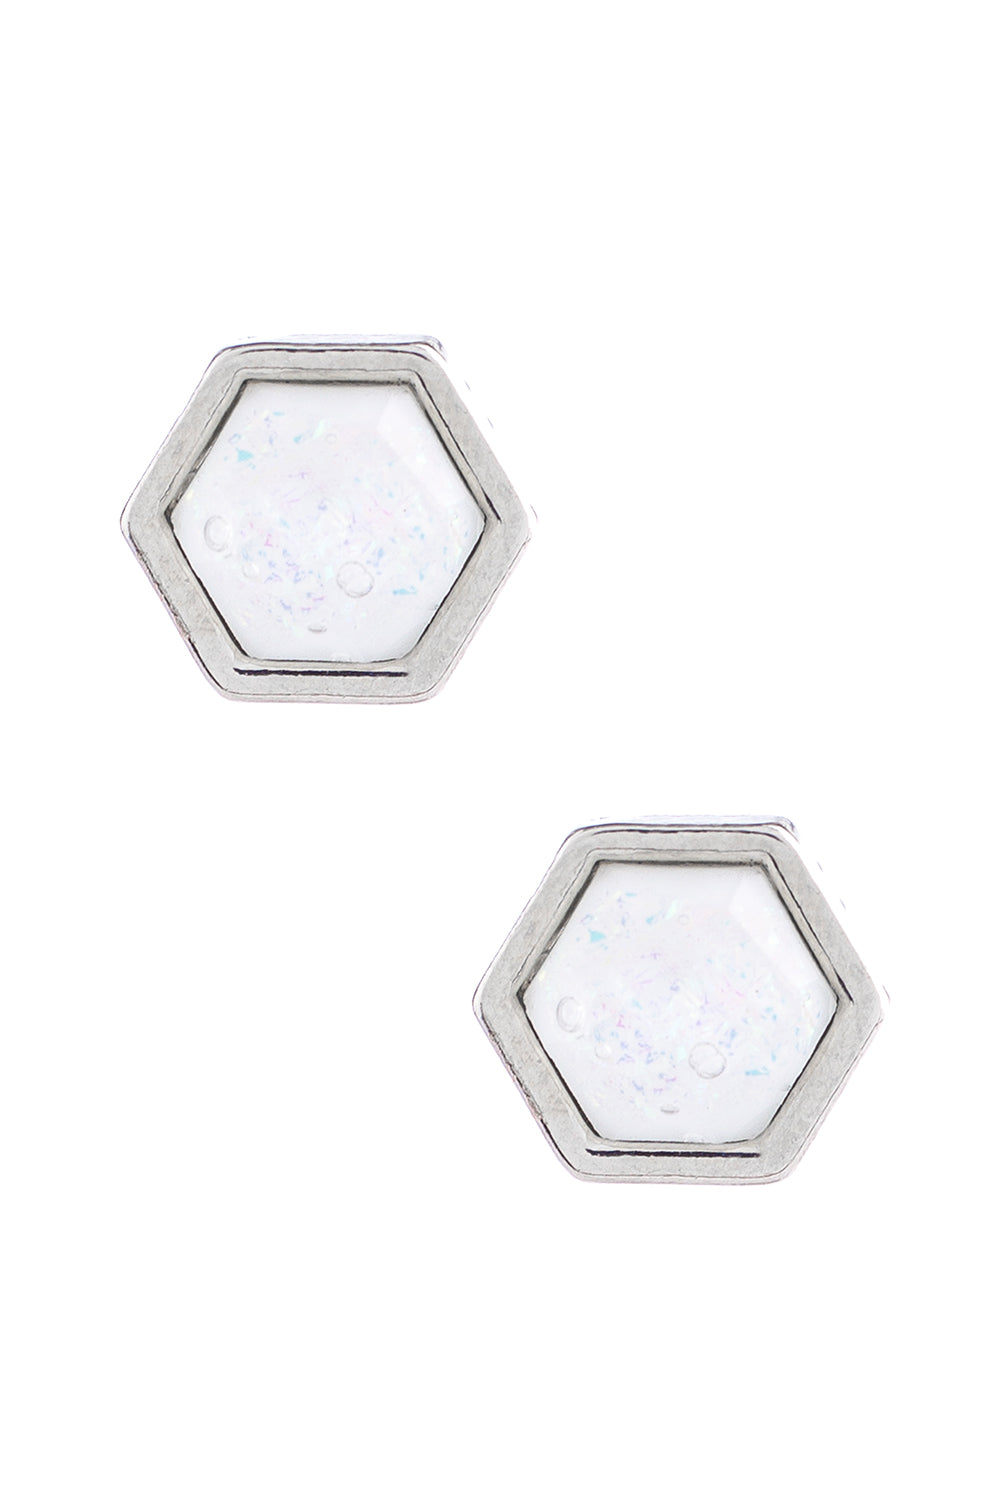 Type 4 Elite Class Earrings